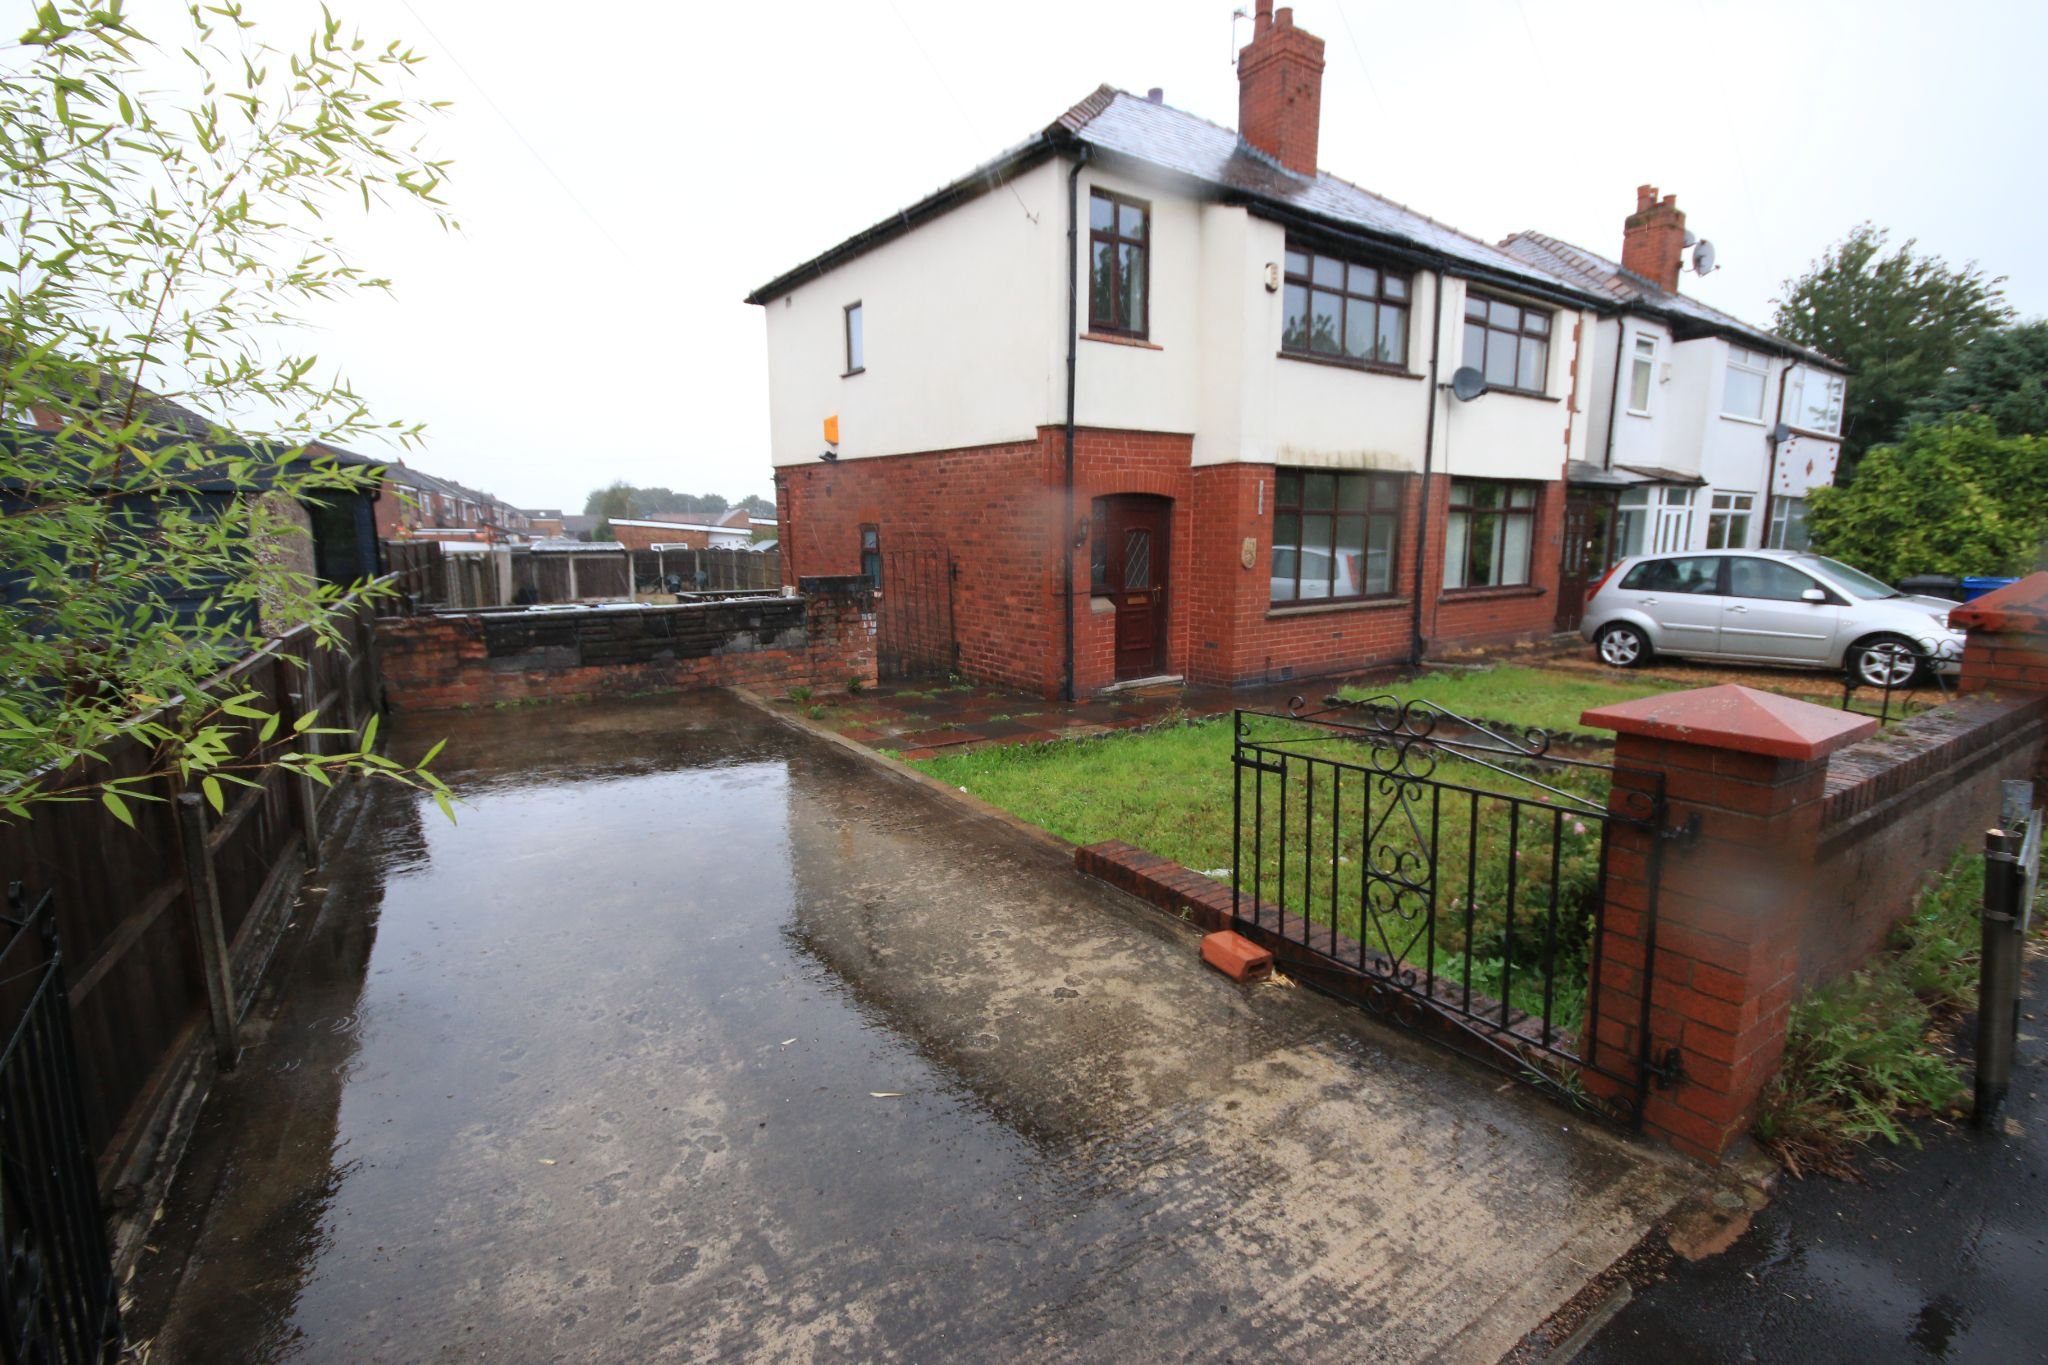 3 bedroom semi-detached house To Let in Wigan - Photograph 1.